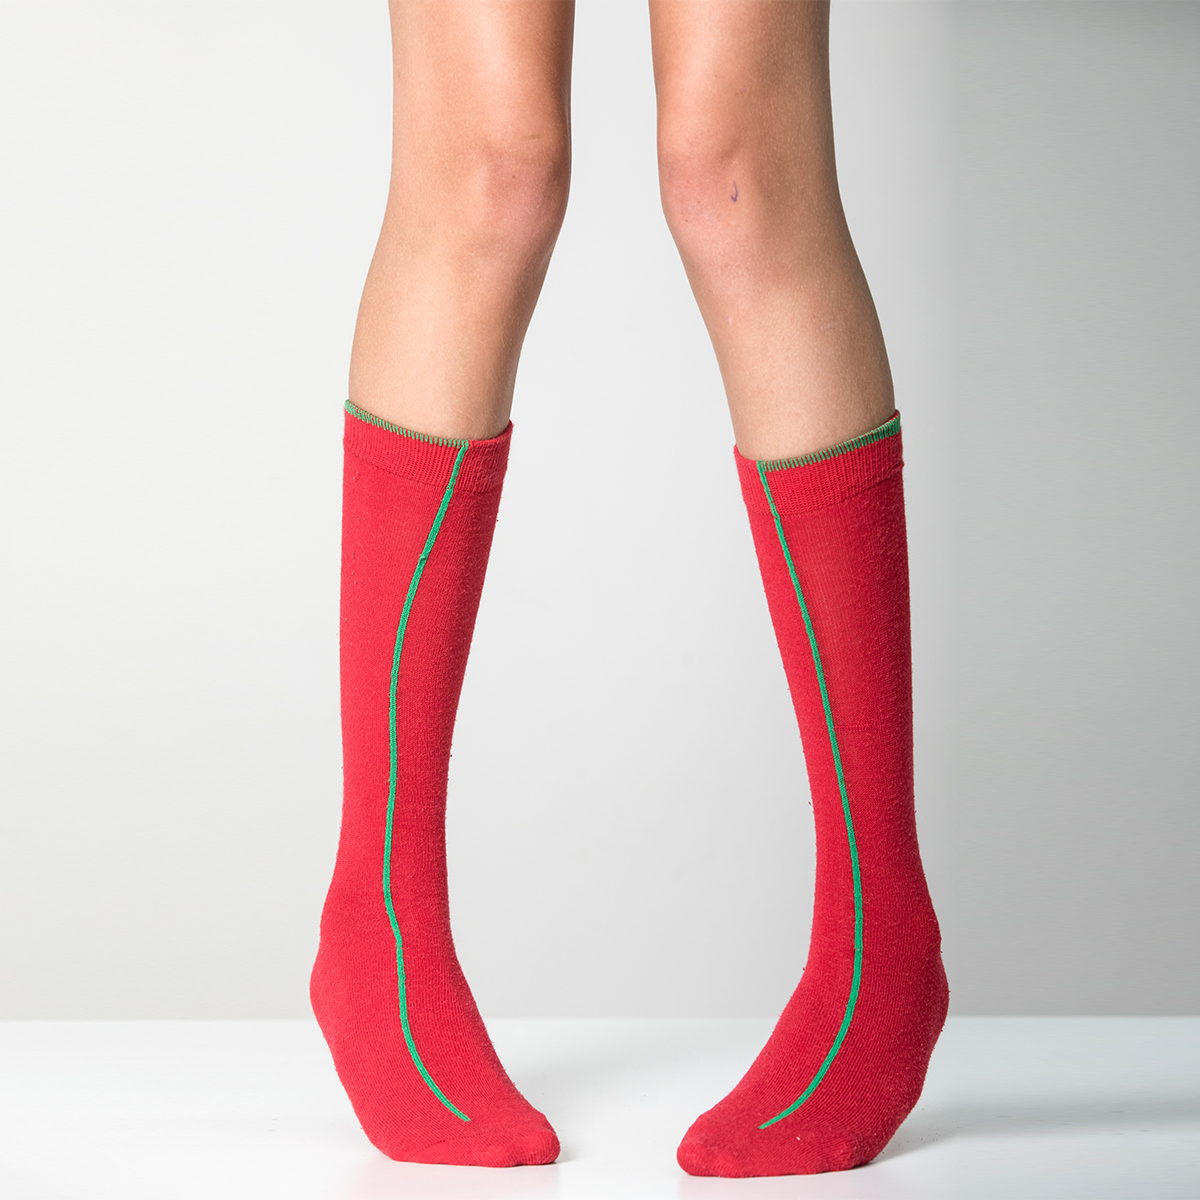 Is it ART? Is it design? IT doesn't matter IT'S A ROEL. ONE LINER socks designed by Roel Vandebeek www.itsaroel.com